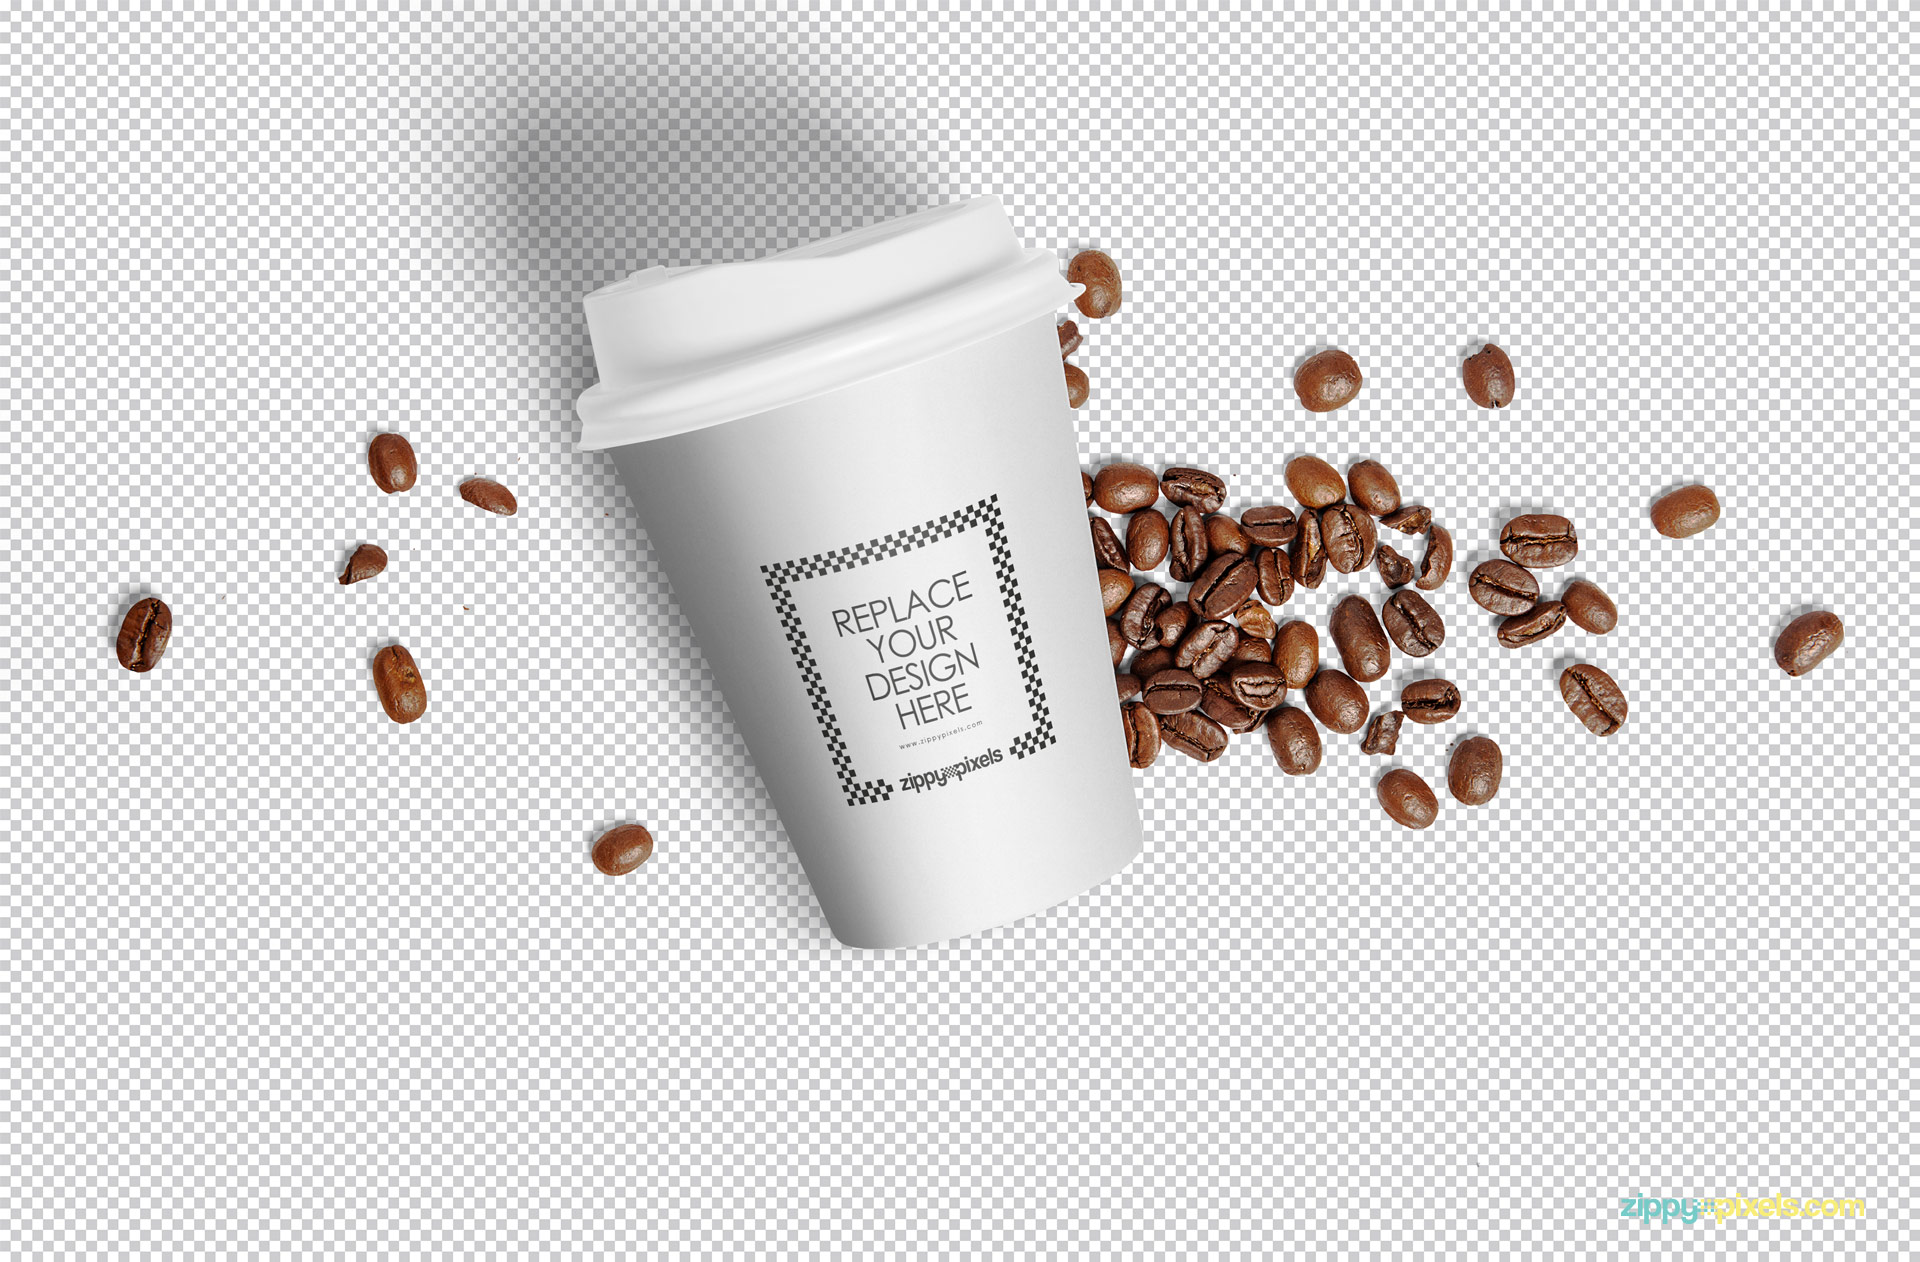 White cup and coffee beans placed on the gray-scale background.